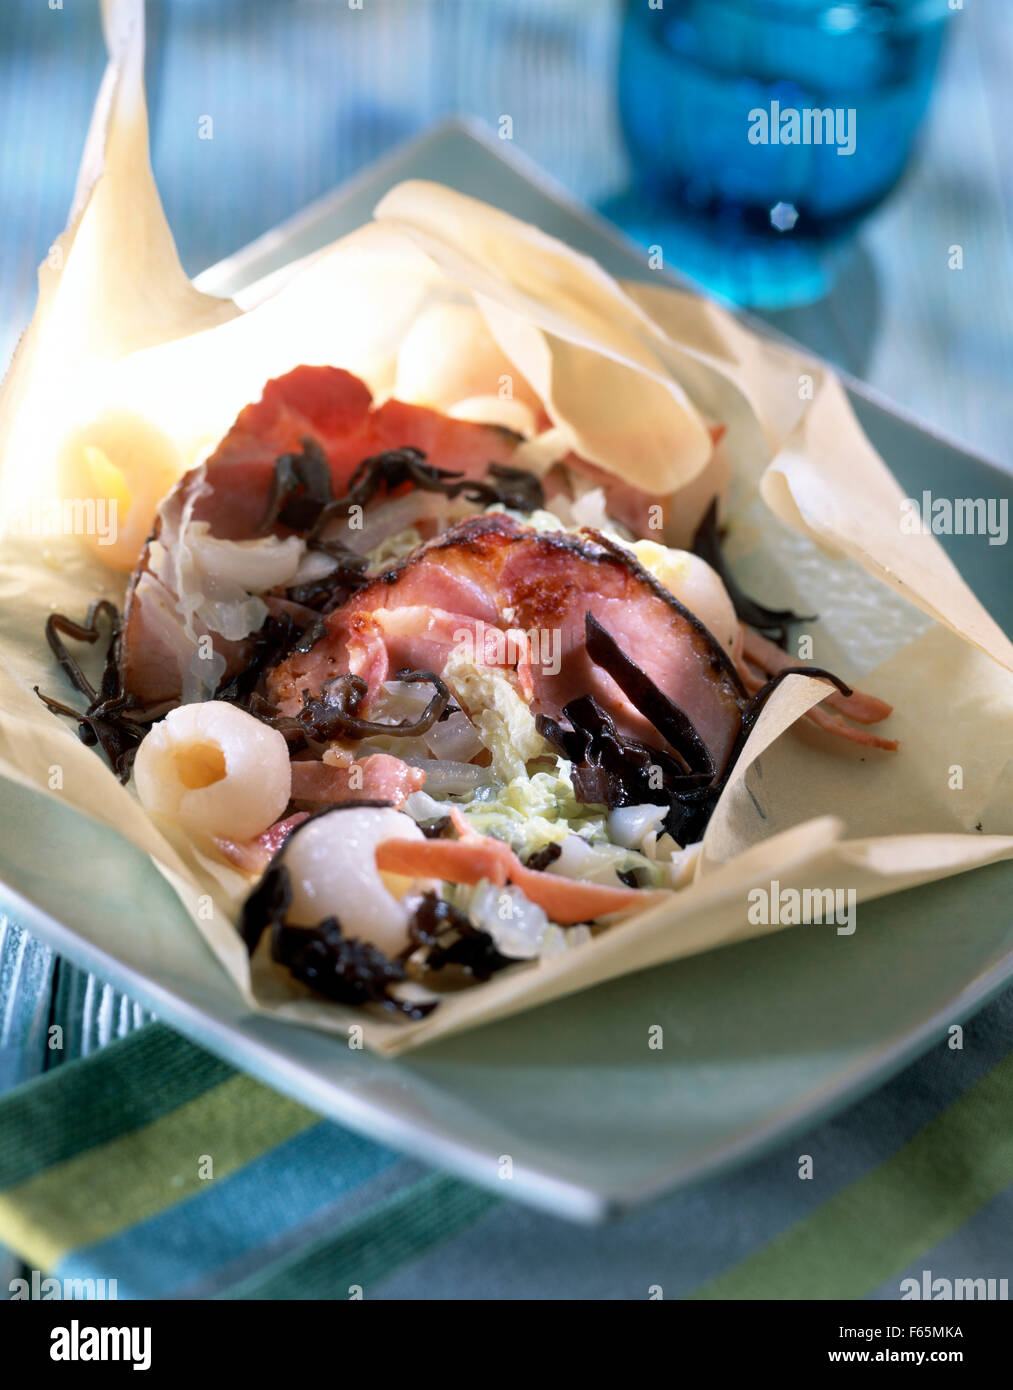 Oriental-style roast pork cooked in wax paper Stock Photo